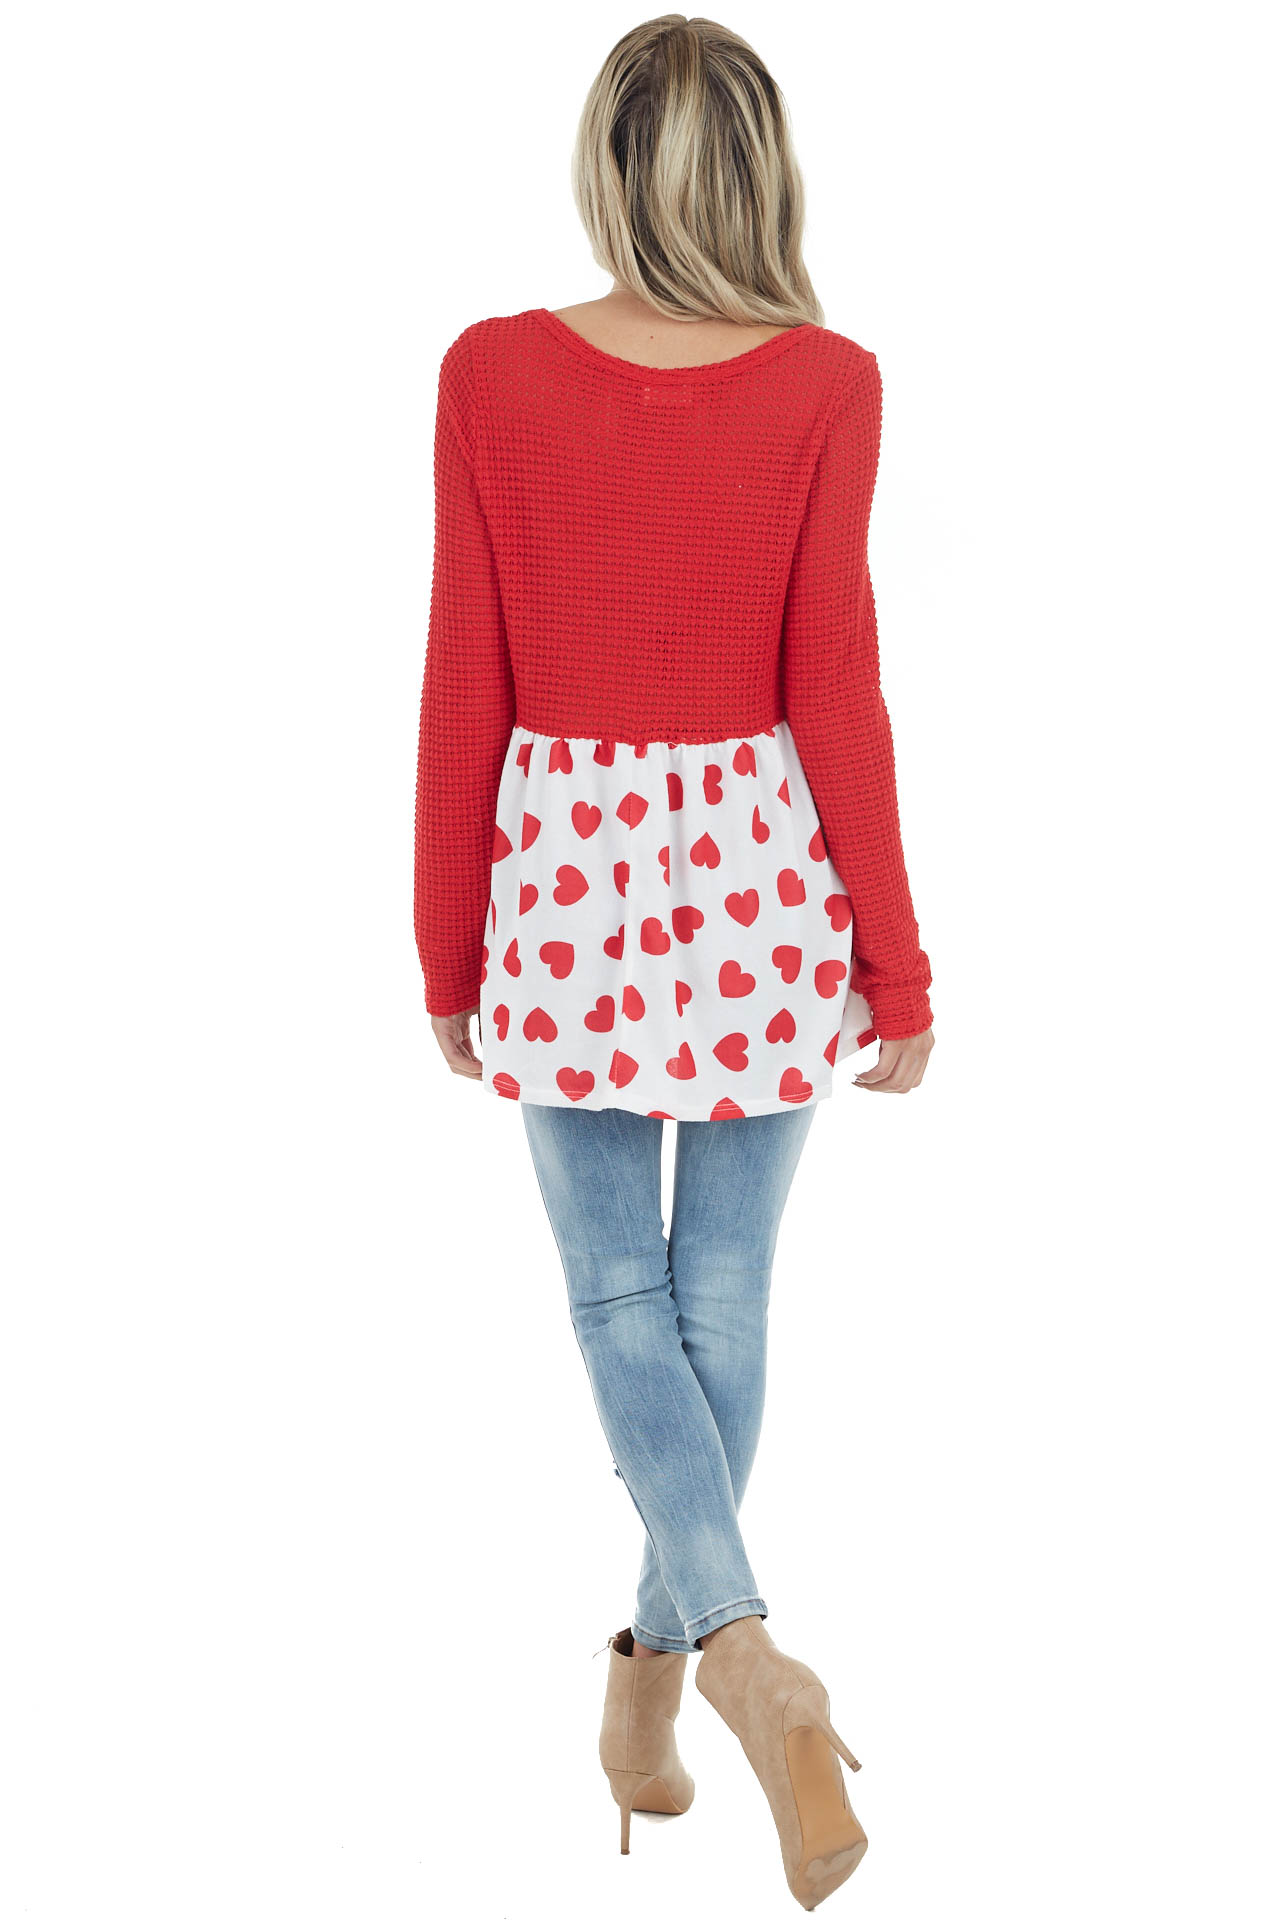 Lipstick Red Long Sleeve Knit Top with Heart Print Detail